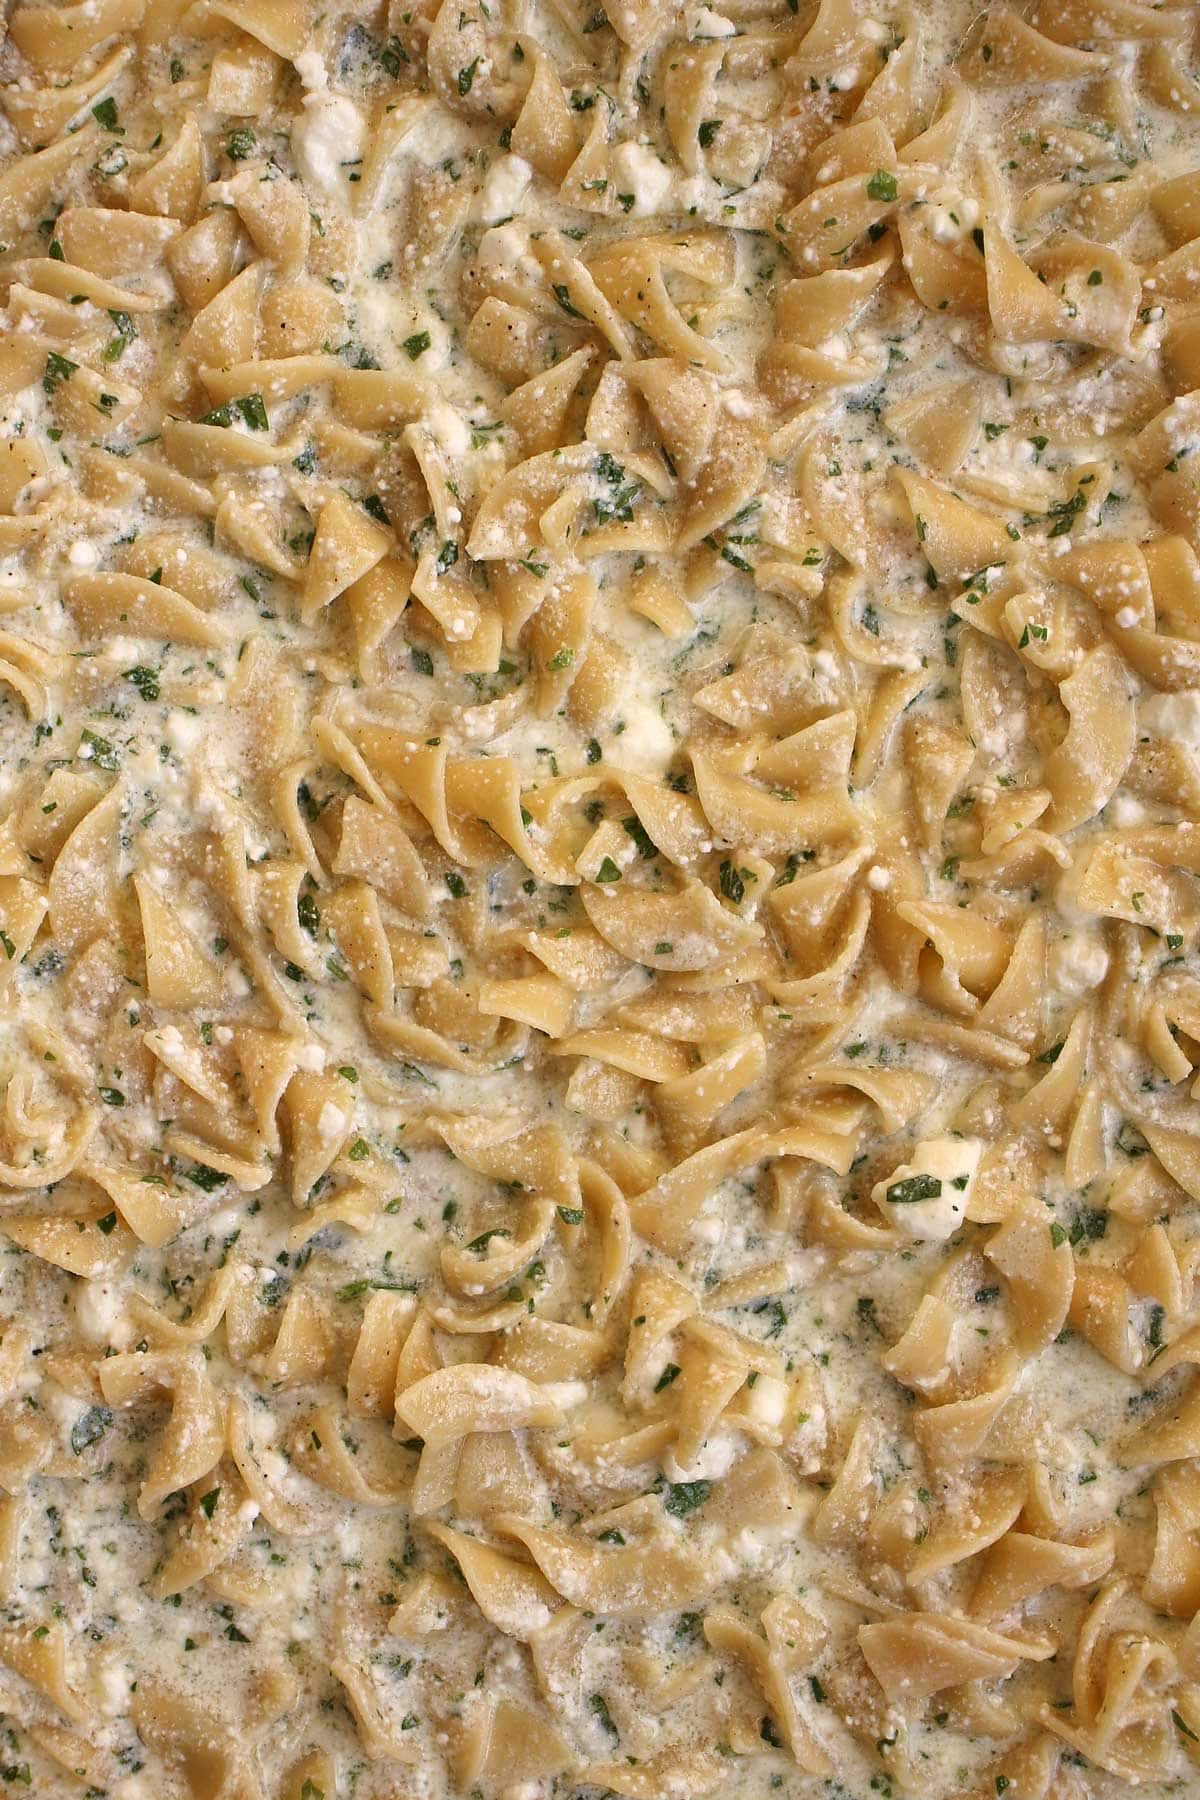 Closeup of egg noodles mixed with milk, feta cheese, and parsley in a baking pan.